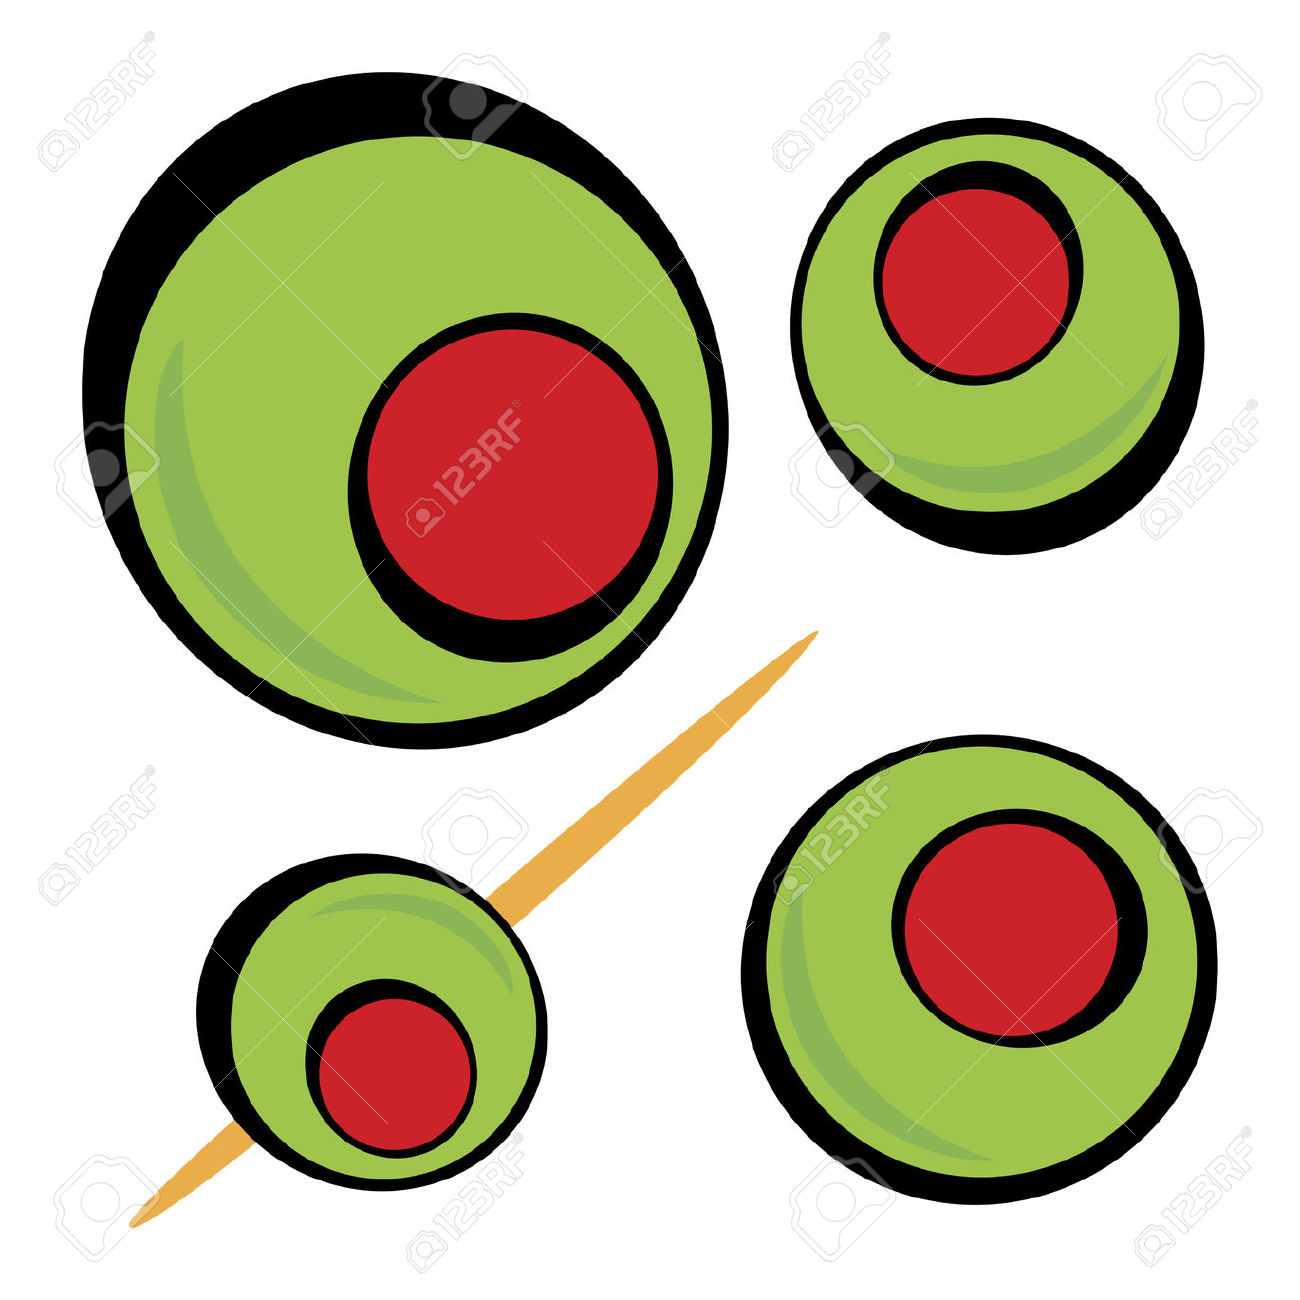 A Variety Of Green Olives. Great Clip Art For A Martini Graphic.